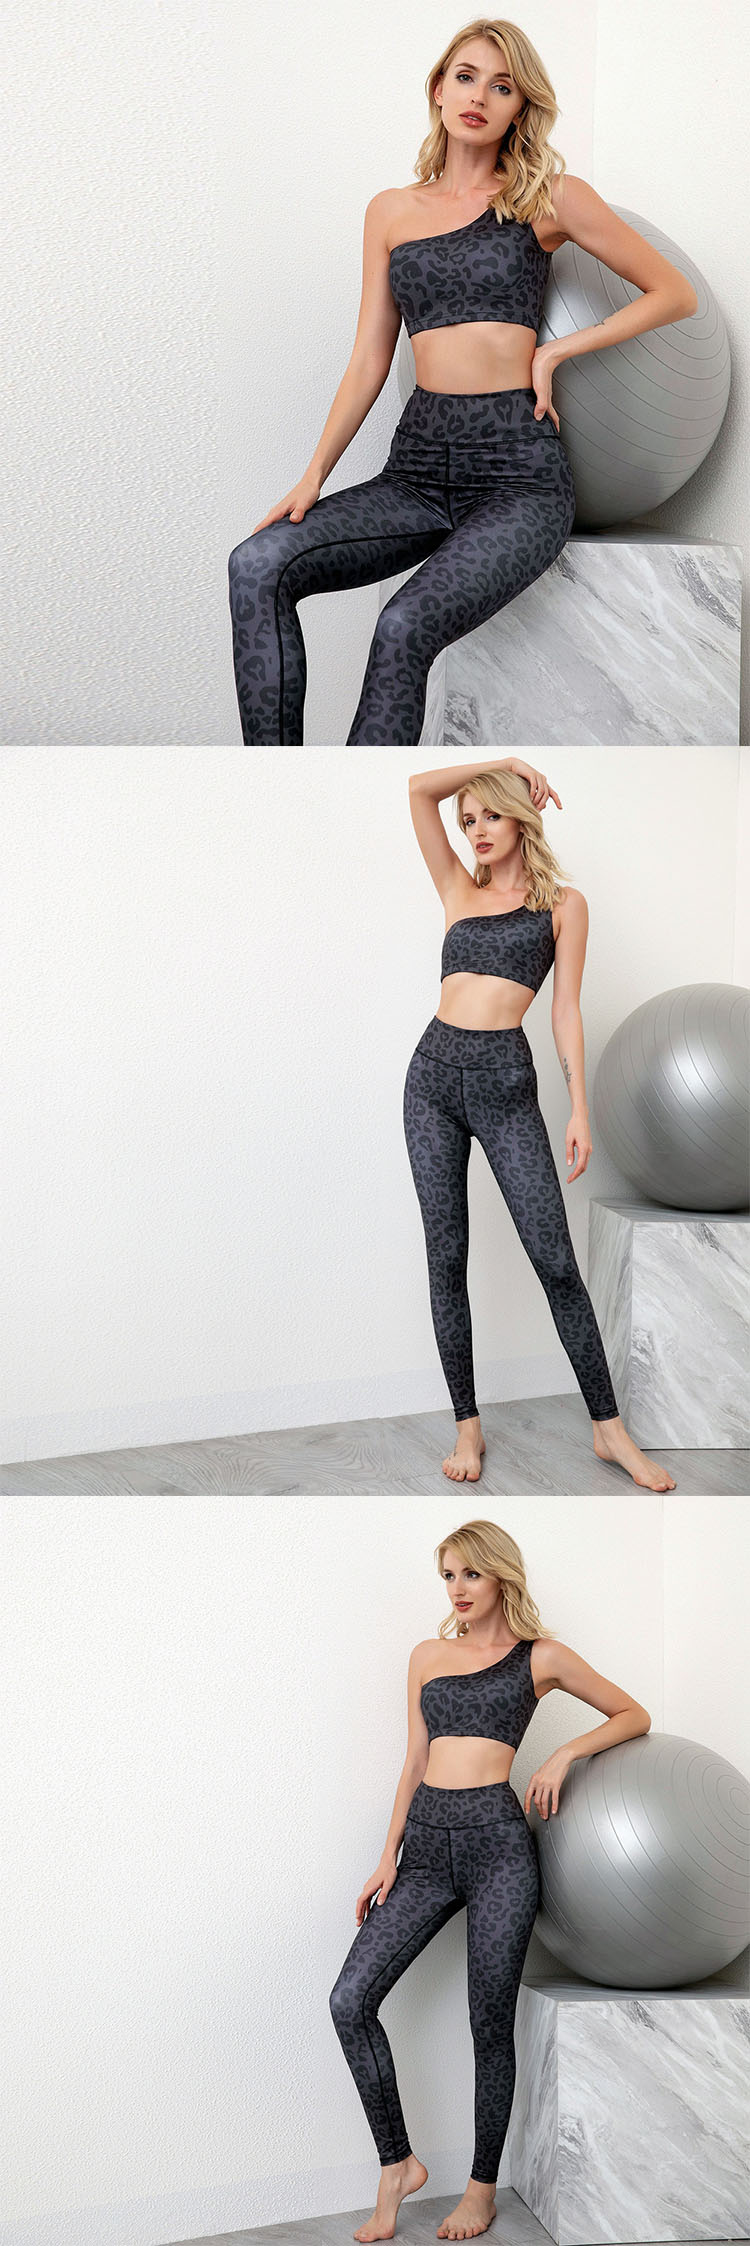 By streamlining the outline and reducing the color of the simple leopard print sports leggings